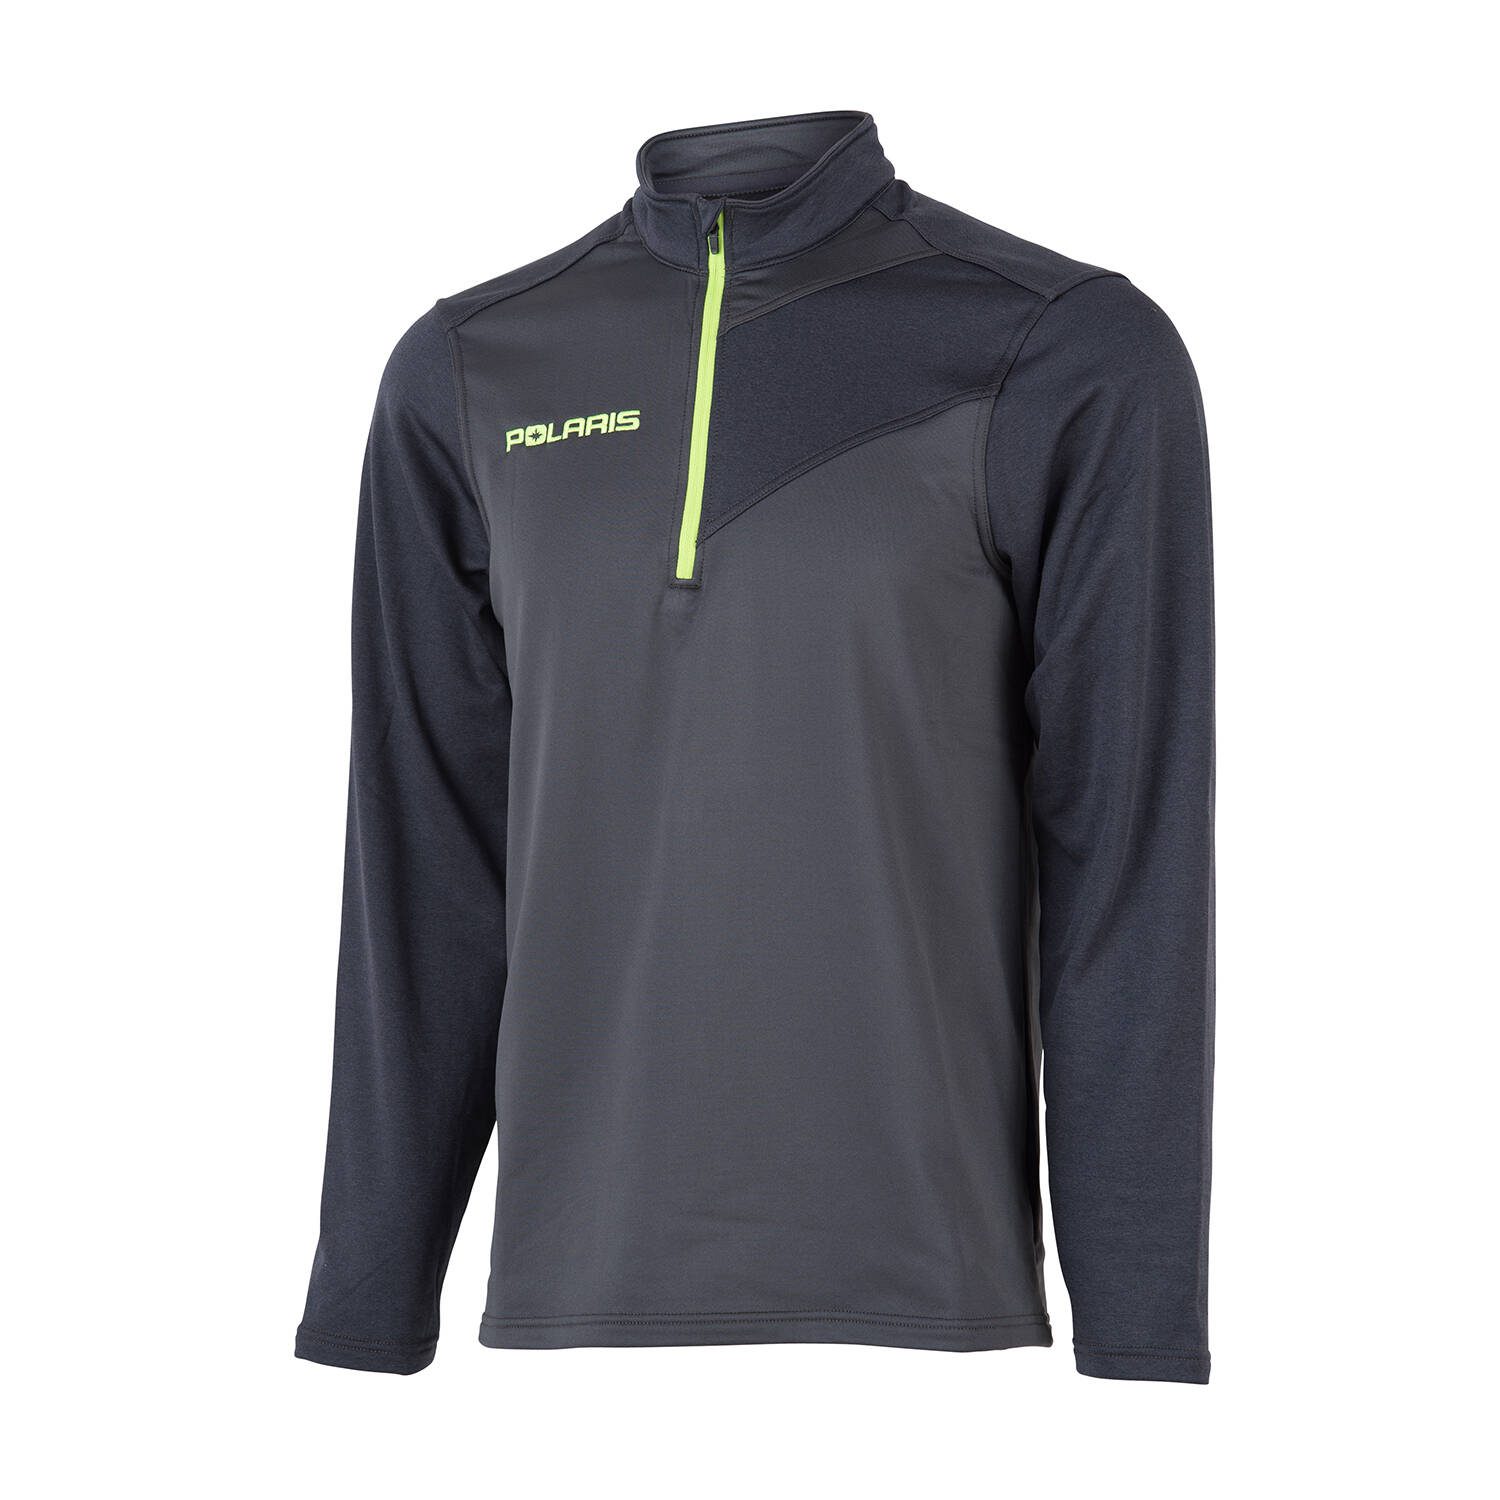 Men's Long-Sleeve Quarter-Zip Pullover with Lime Polaris® Logo, Gray